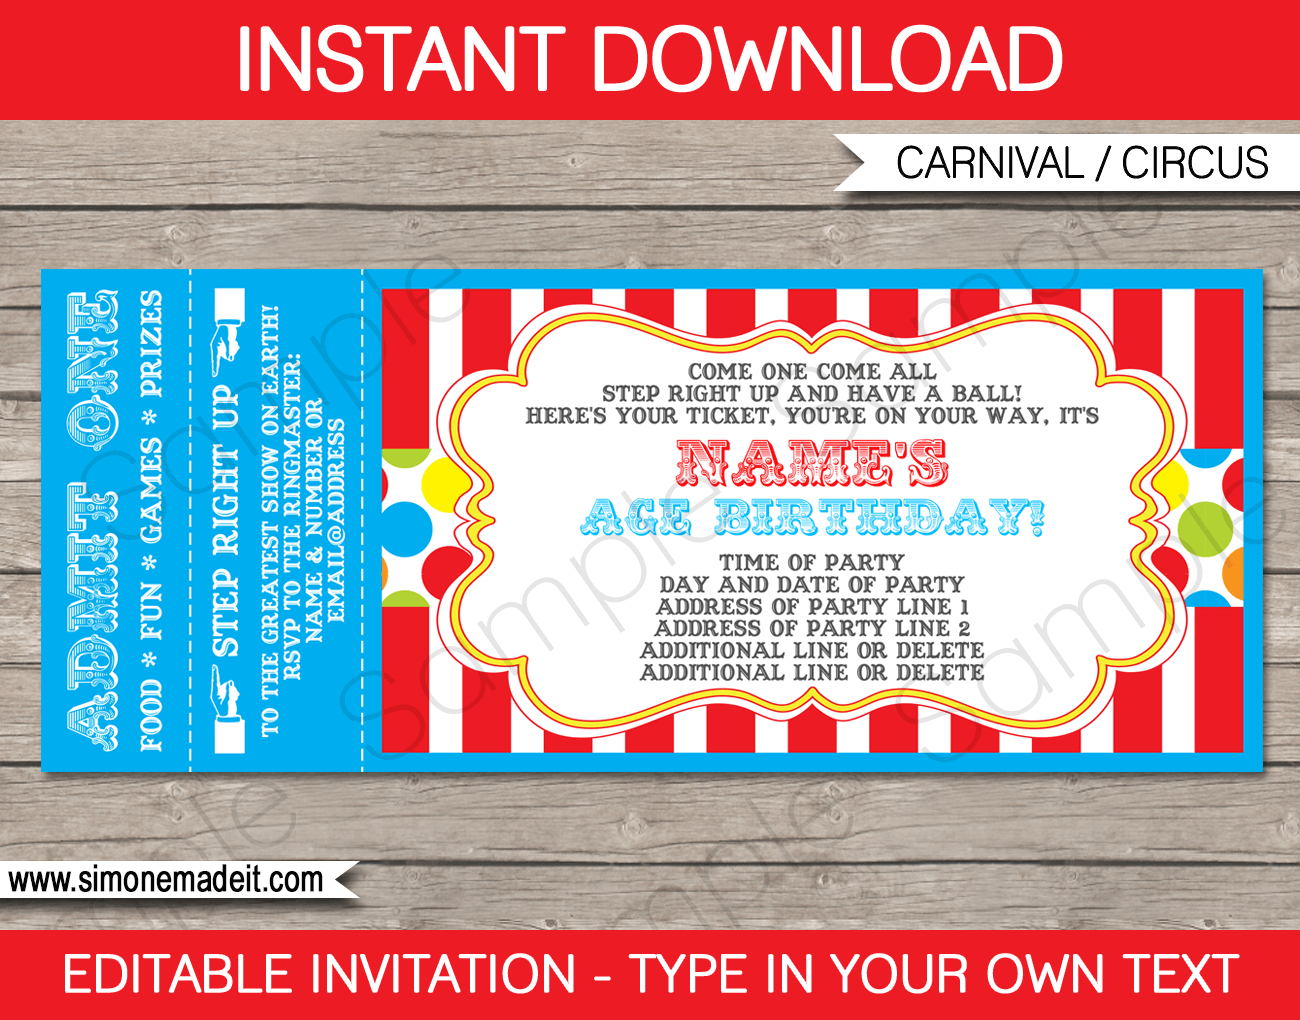 Carnival Party Ticket Invitation Template | Carnival Or Circus - Free Printable Ticket Invitations